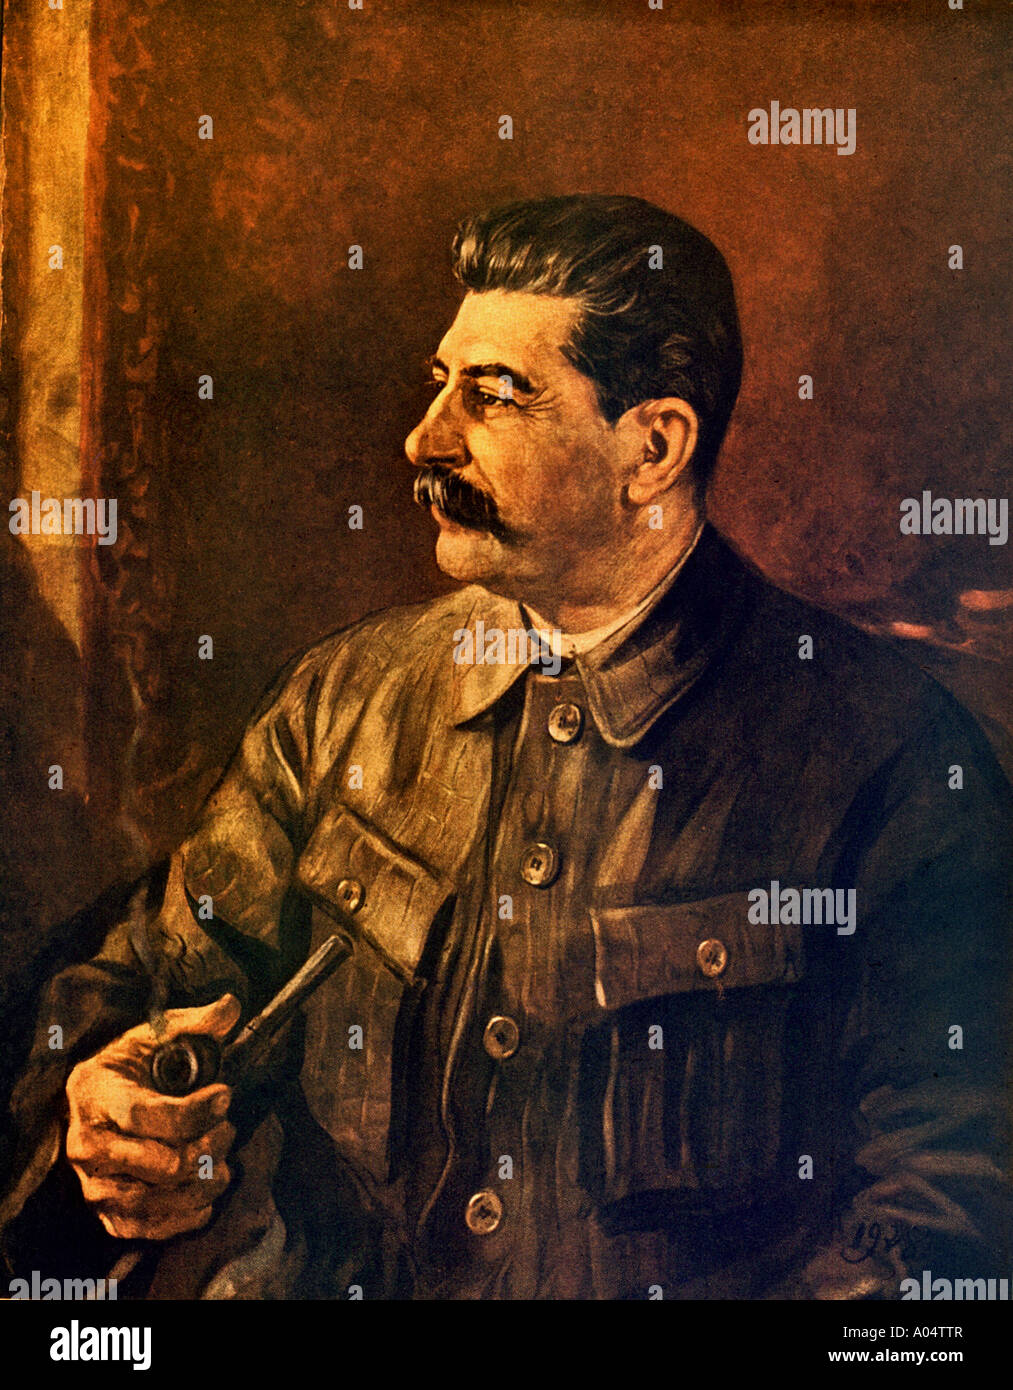 JOSEPH STALIN Soviet revolutionary and leader in a 1944 painting - Stock Image